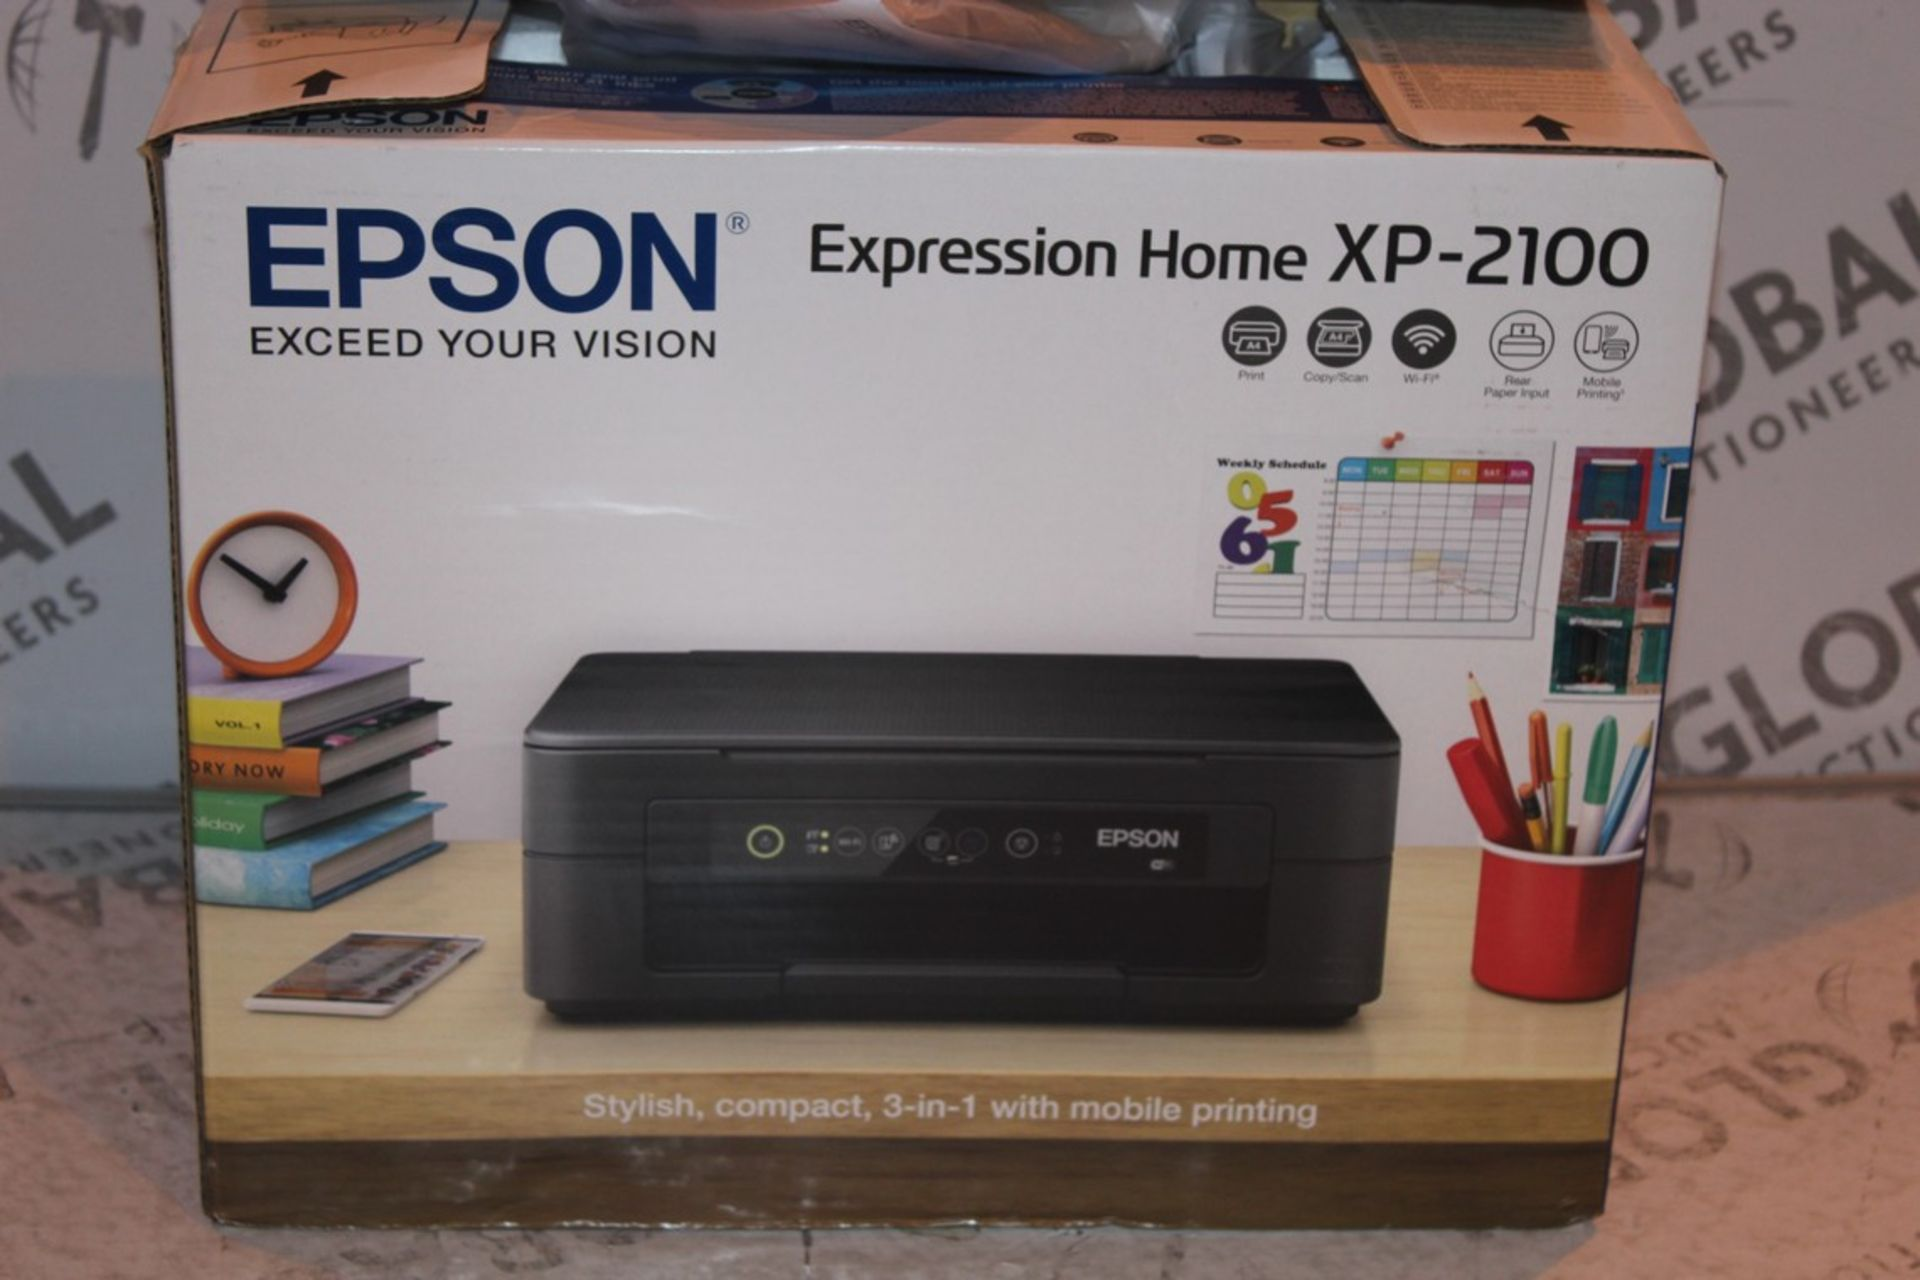 Lot 1 - Boxed Epson Expression Home XP2100 Printer RRP £55 (Public Viewing and Appraisals Available)